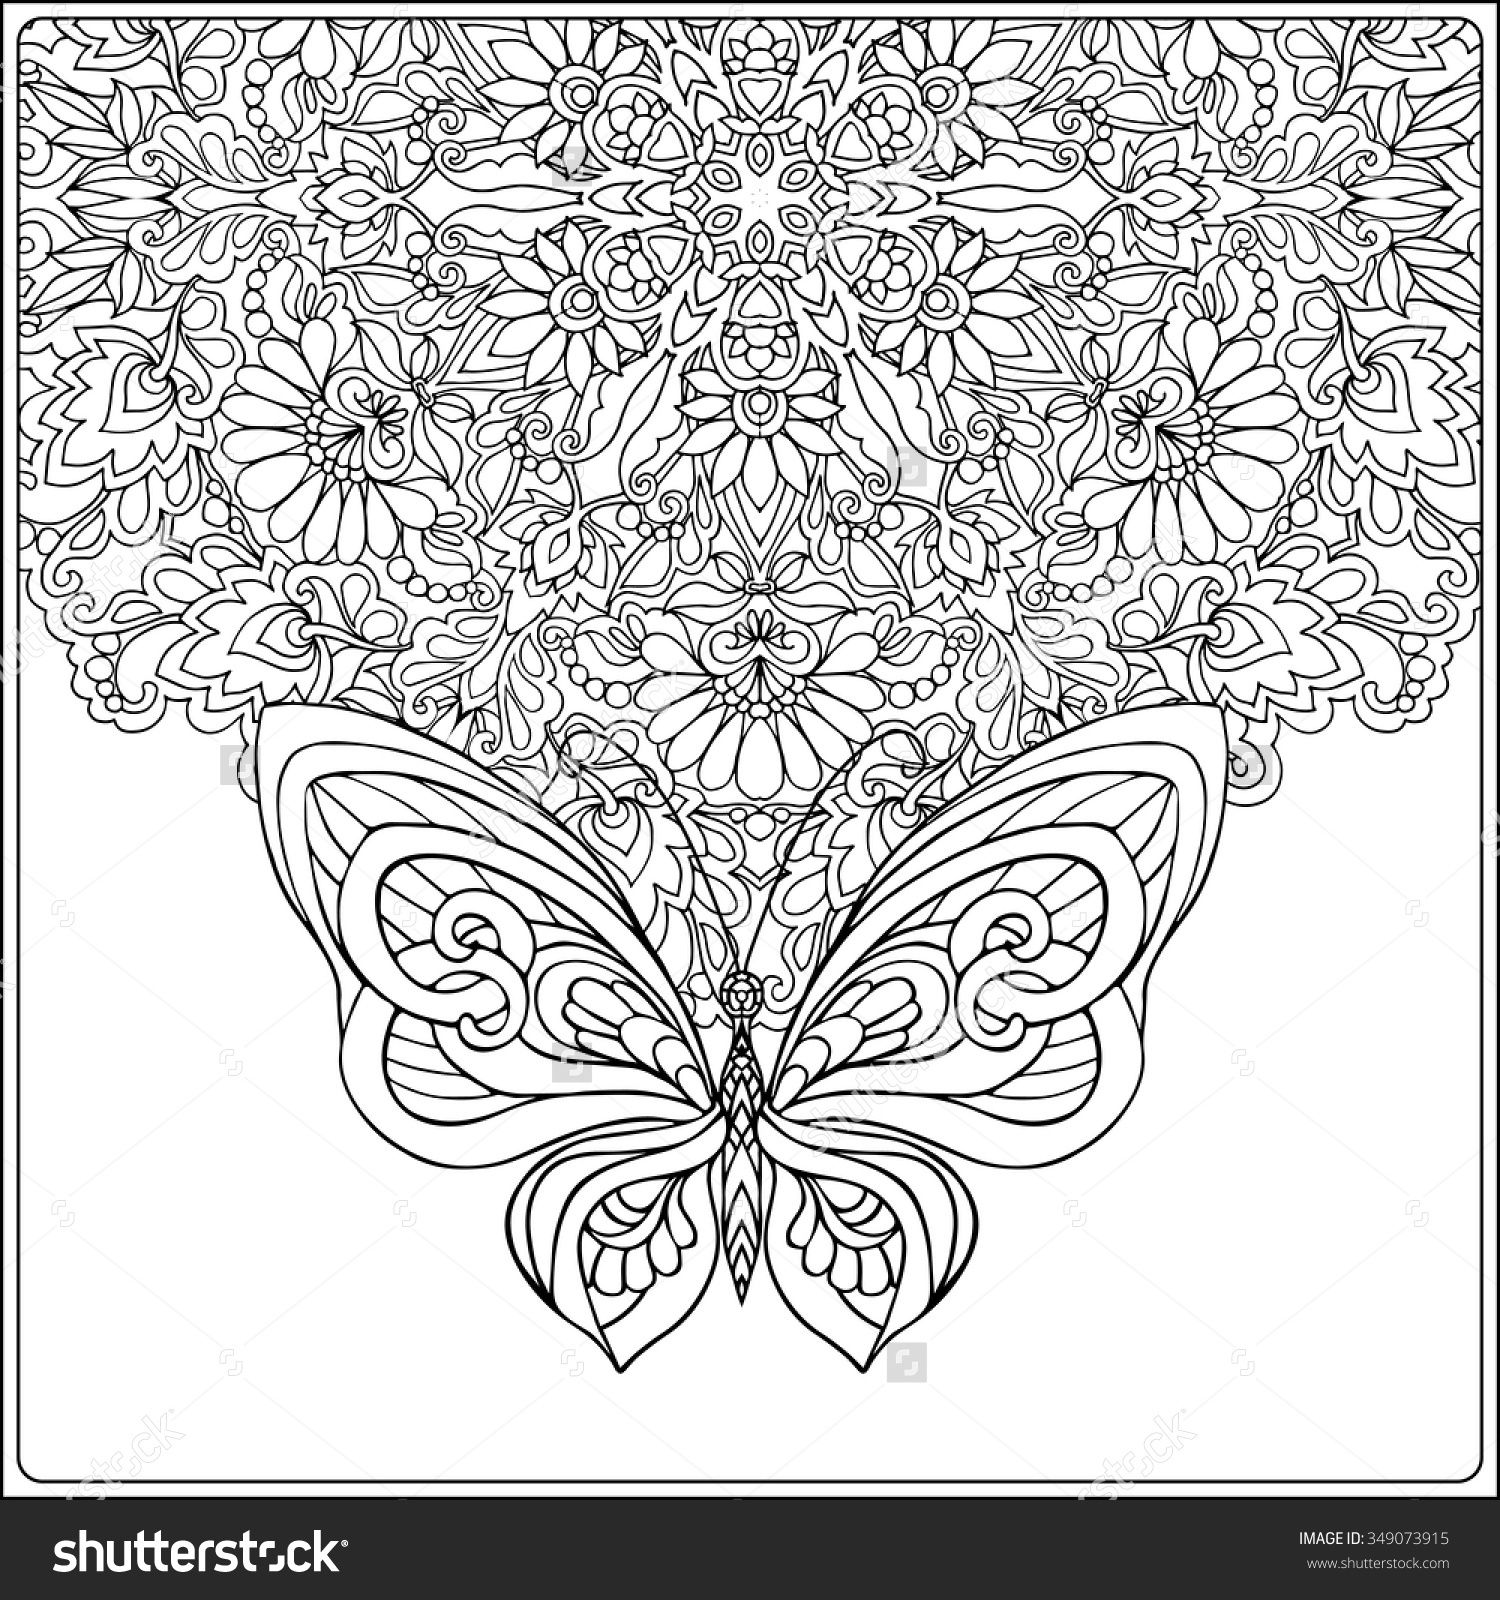 floral mandala colouring pages